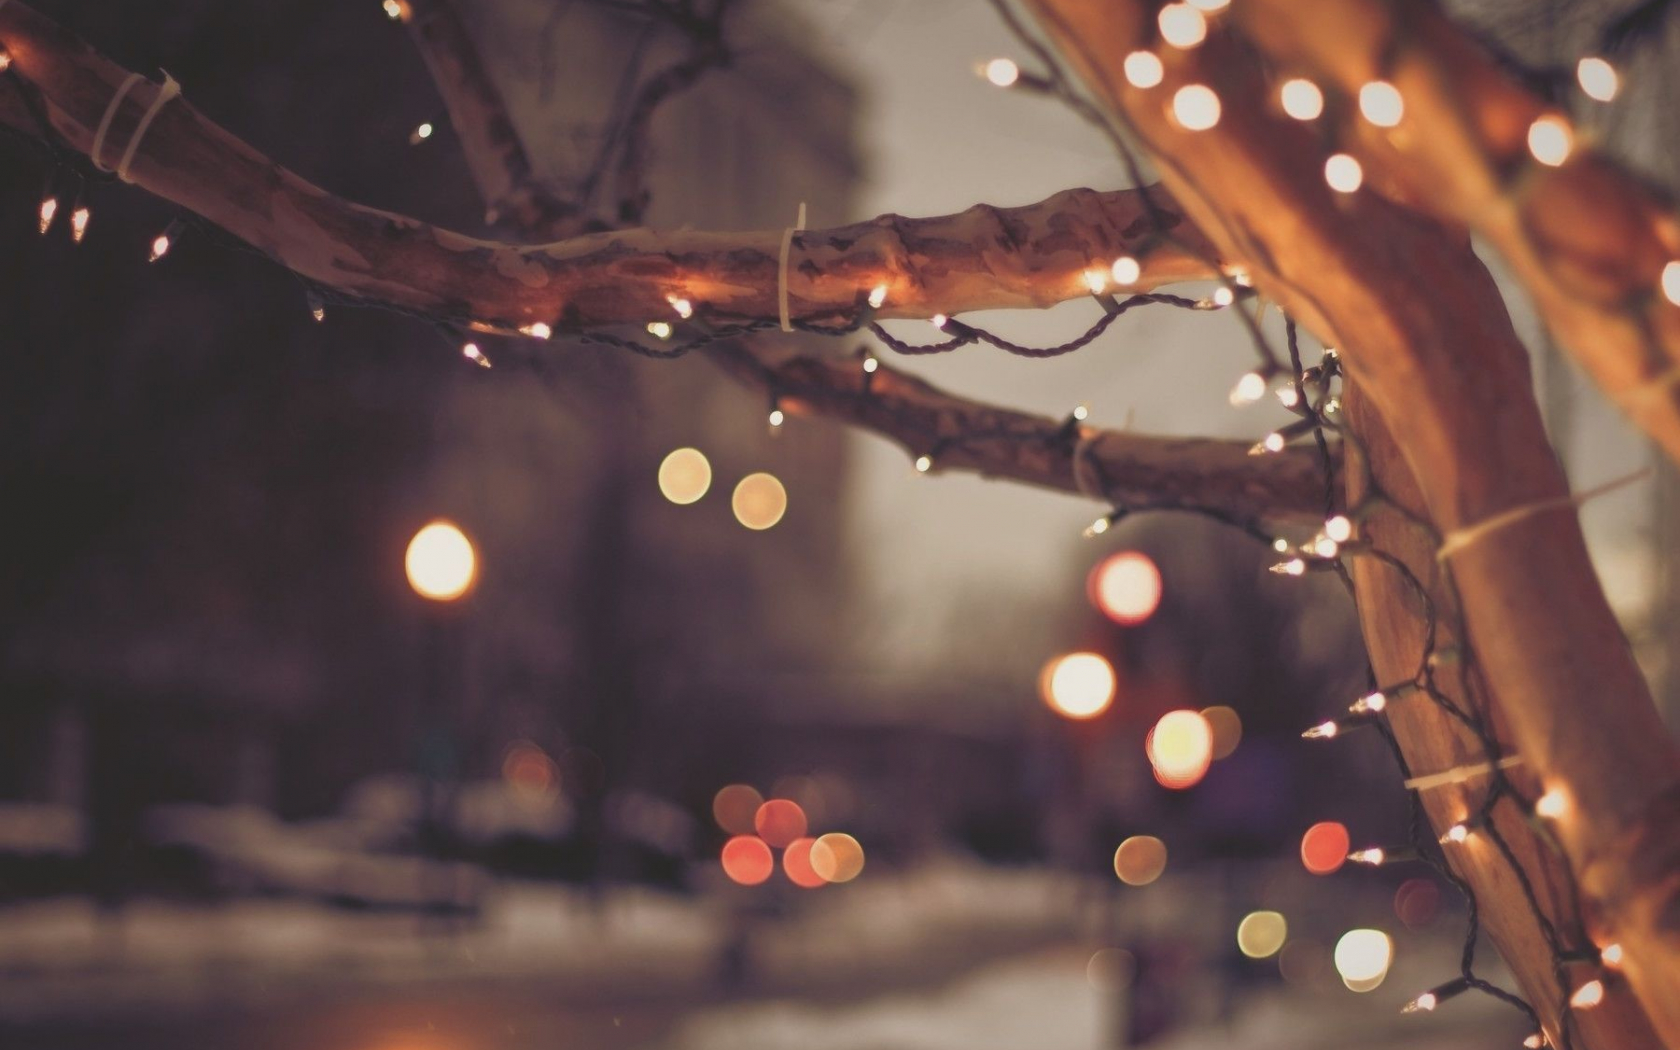 Free Download Christmas Aesthetic Tumblr Computer Wallpapers Top 1800x1197 For Your Desktop Mobile Tablet Explore 34 Christmas Aesthetic Wallpapers Christmas Aesthetic Wallpapers Aesthetic Wallpaper Christmas Aesthetic Wallpaper